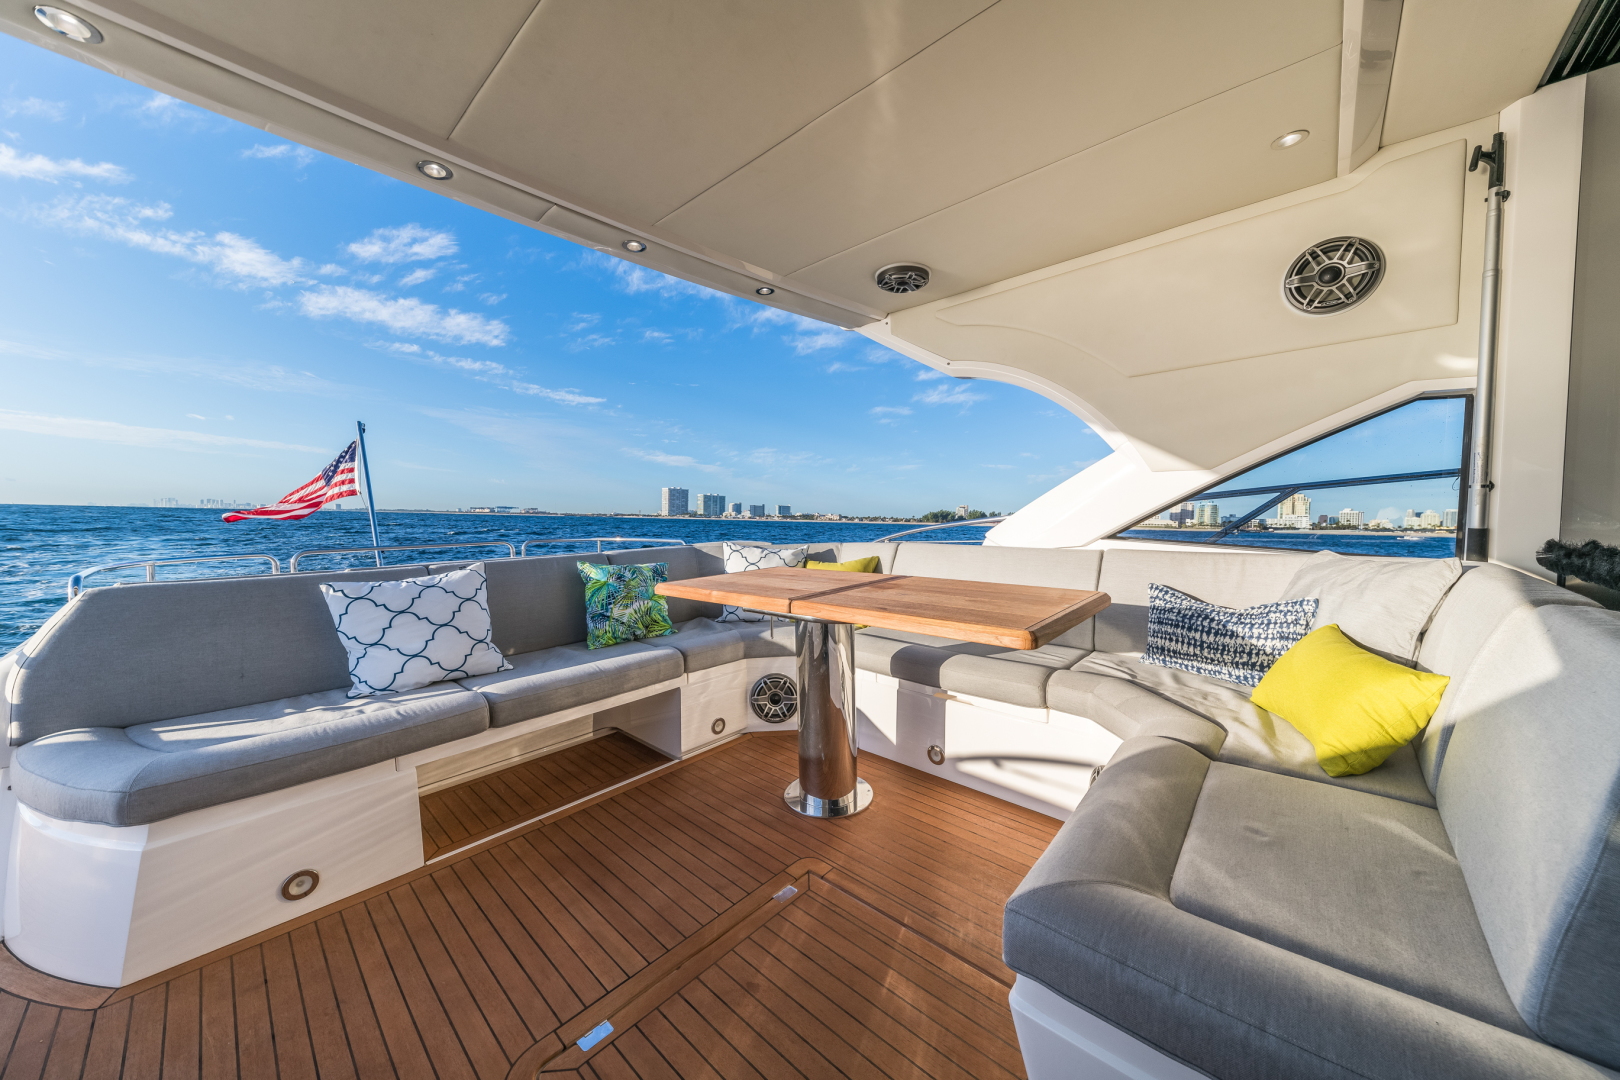 Sunseeker-Predator 2016-Wired Up Fort Lauderdale-Florida-United States-Aft Deck Seating-1585651 | Thumbnail